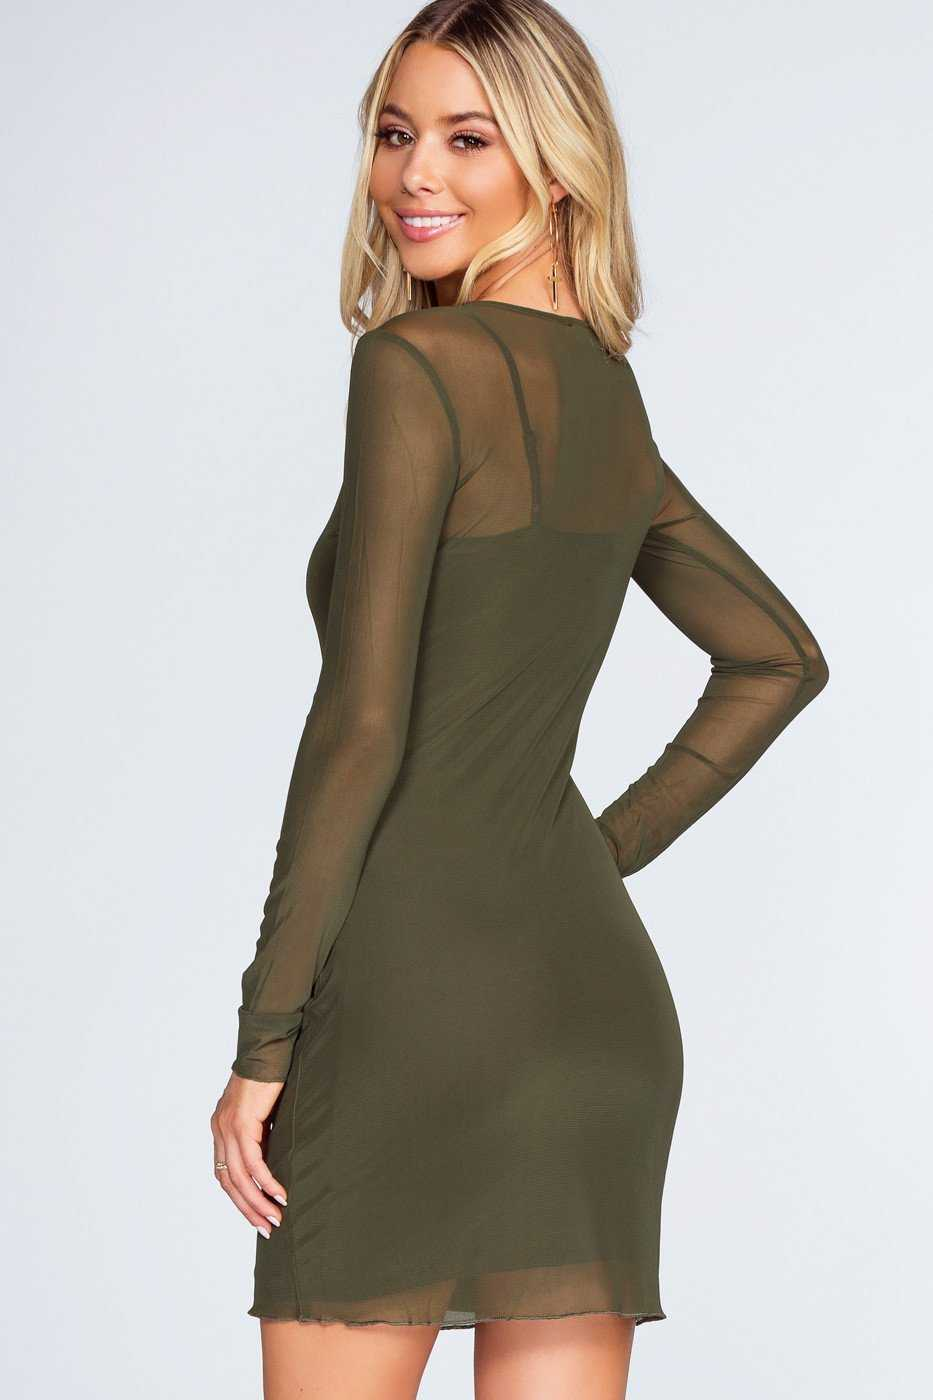 Unforgettable Mesh Dress Olive